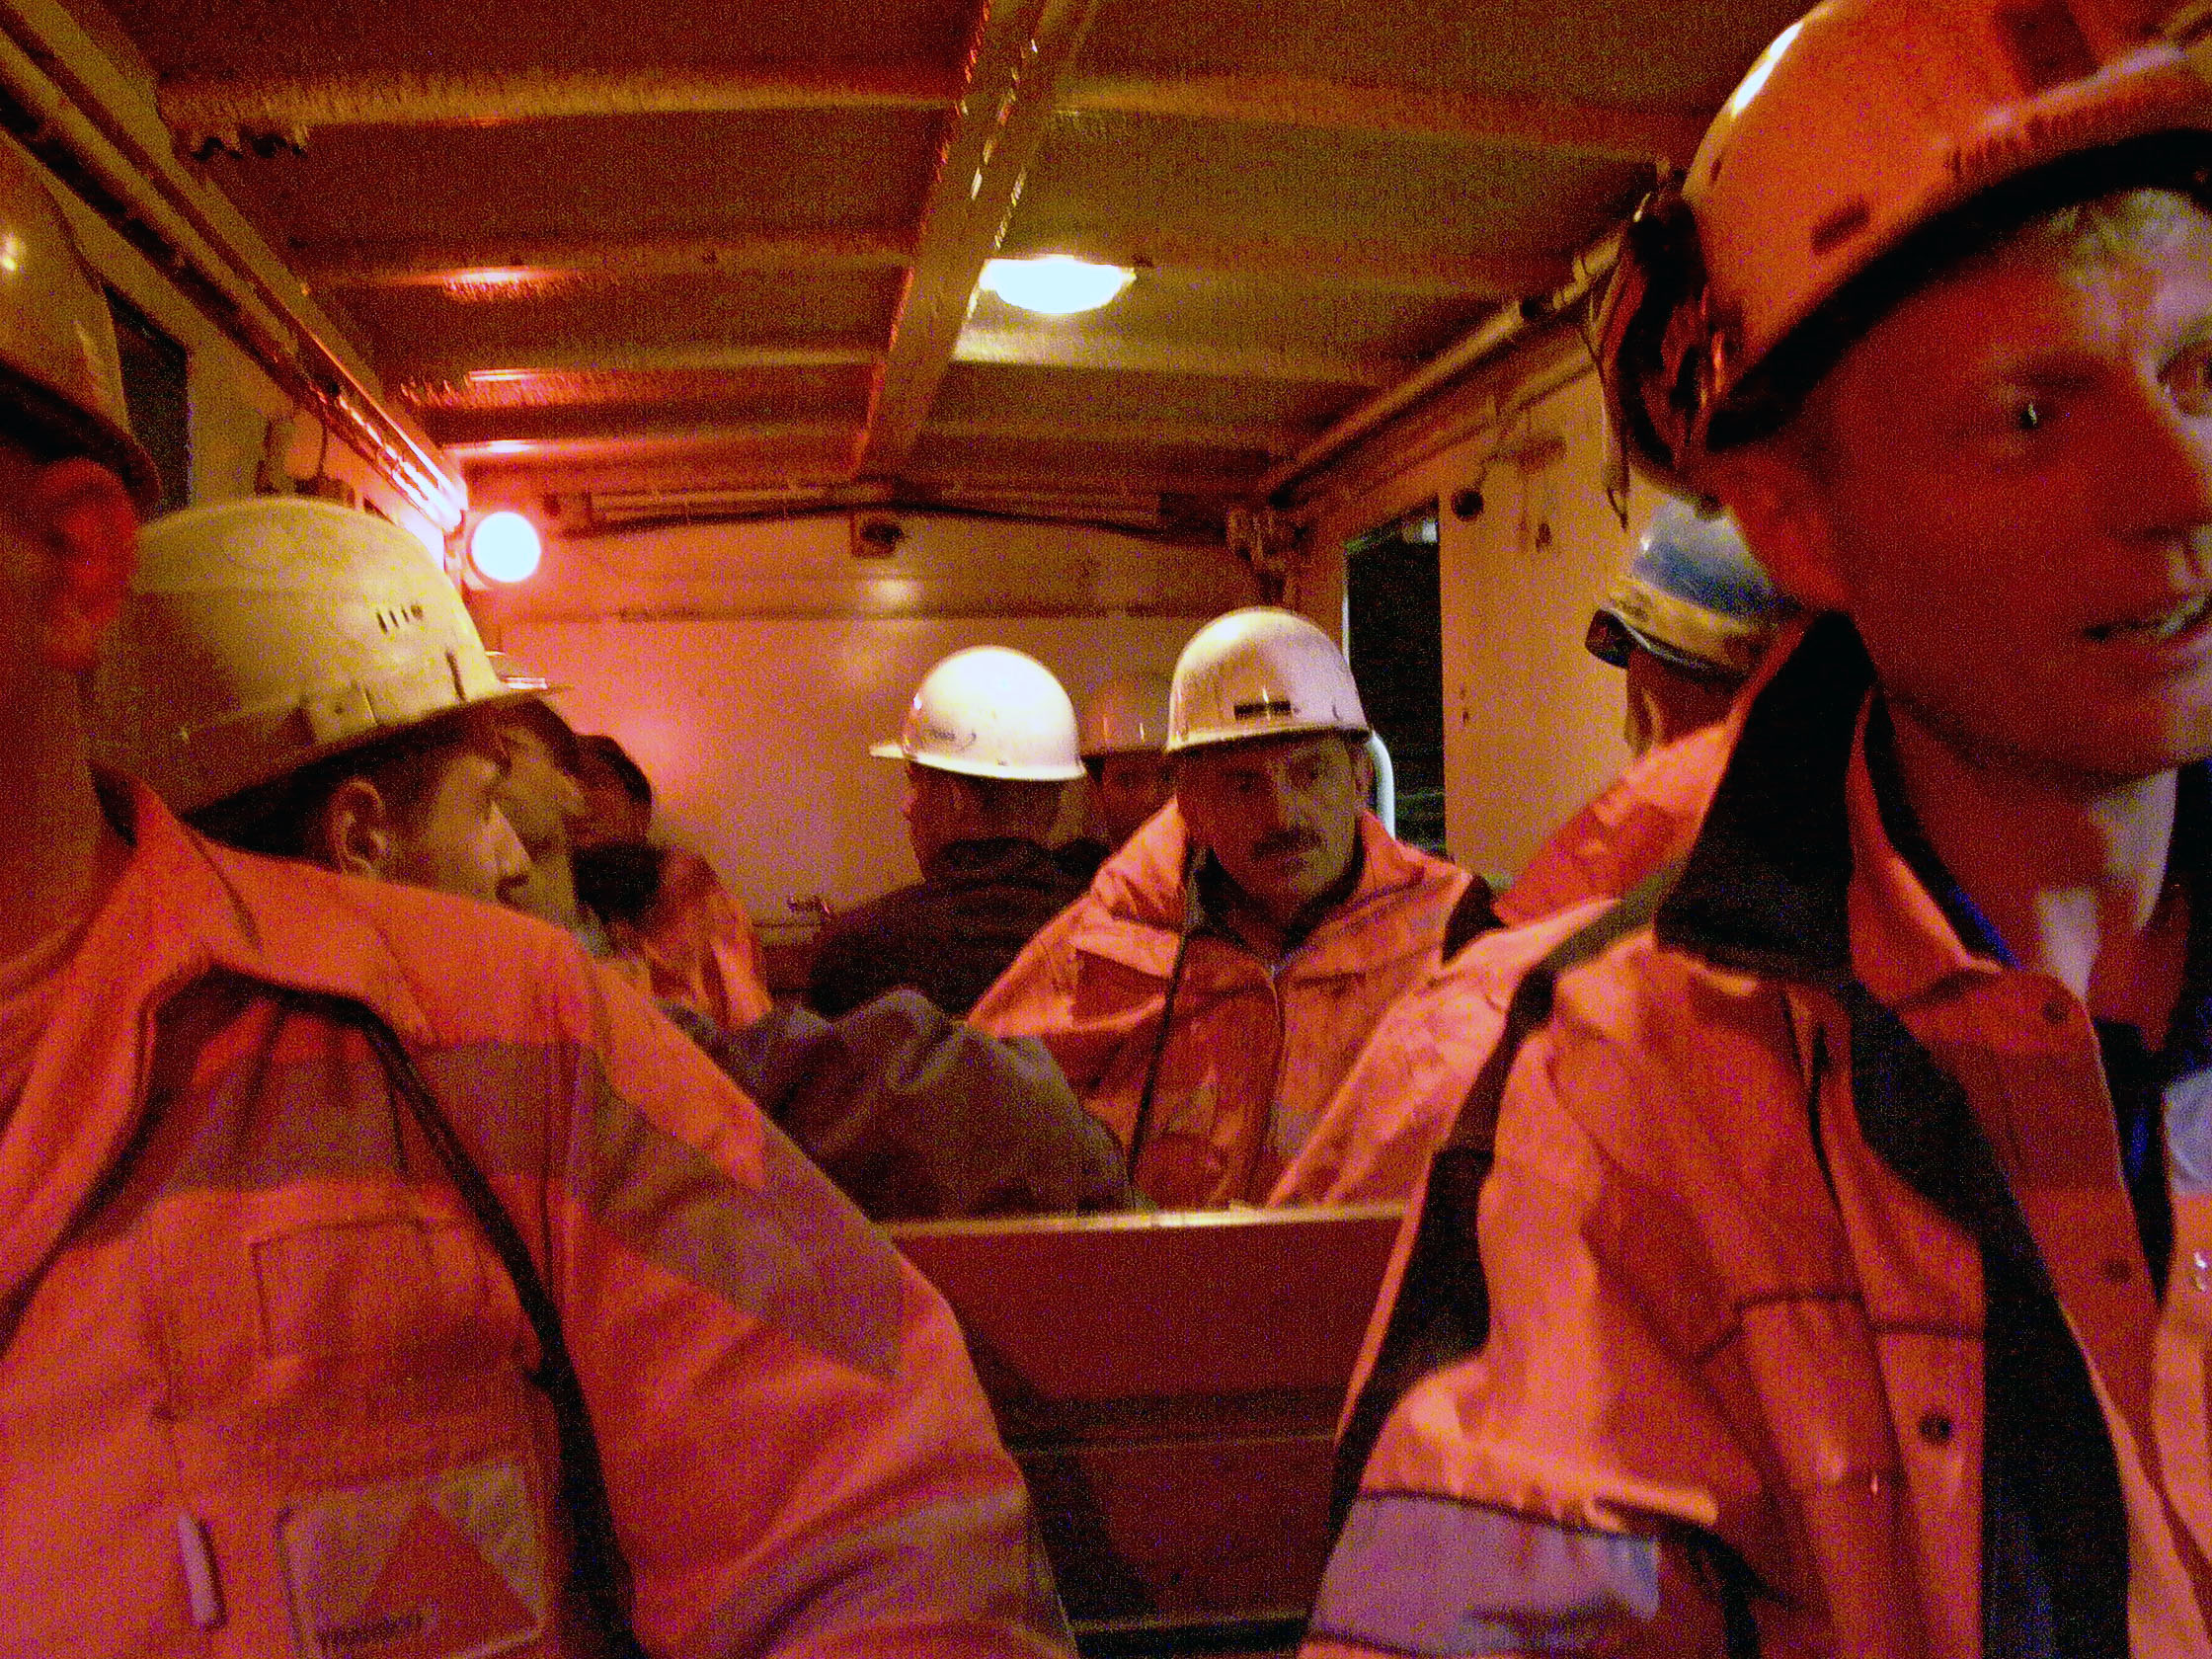 The trip through the one-km-long access tunnel brings the workers up to daylight near Sedrun.